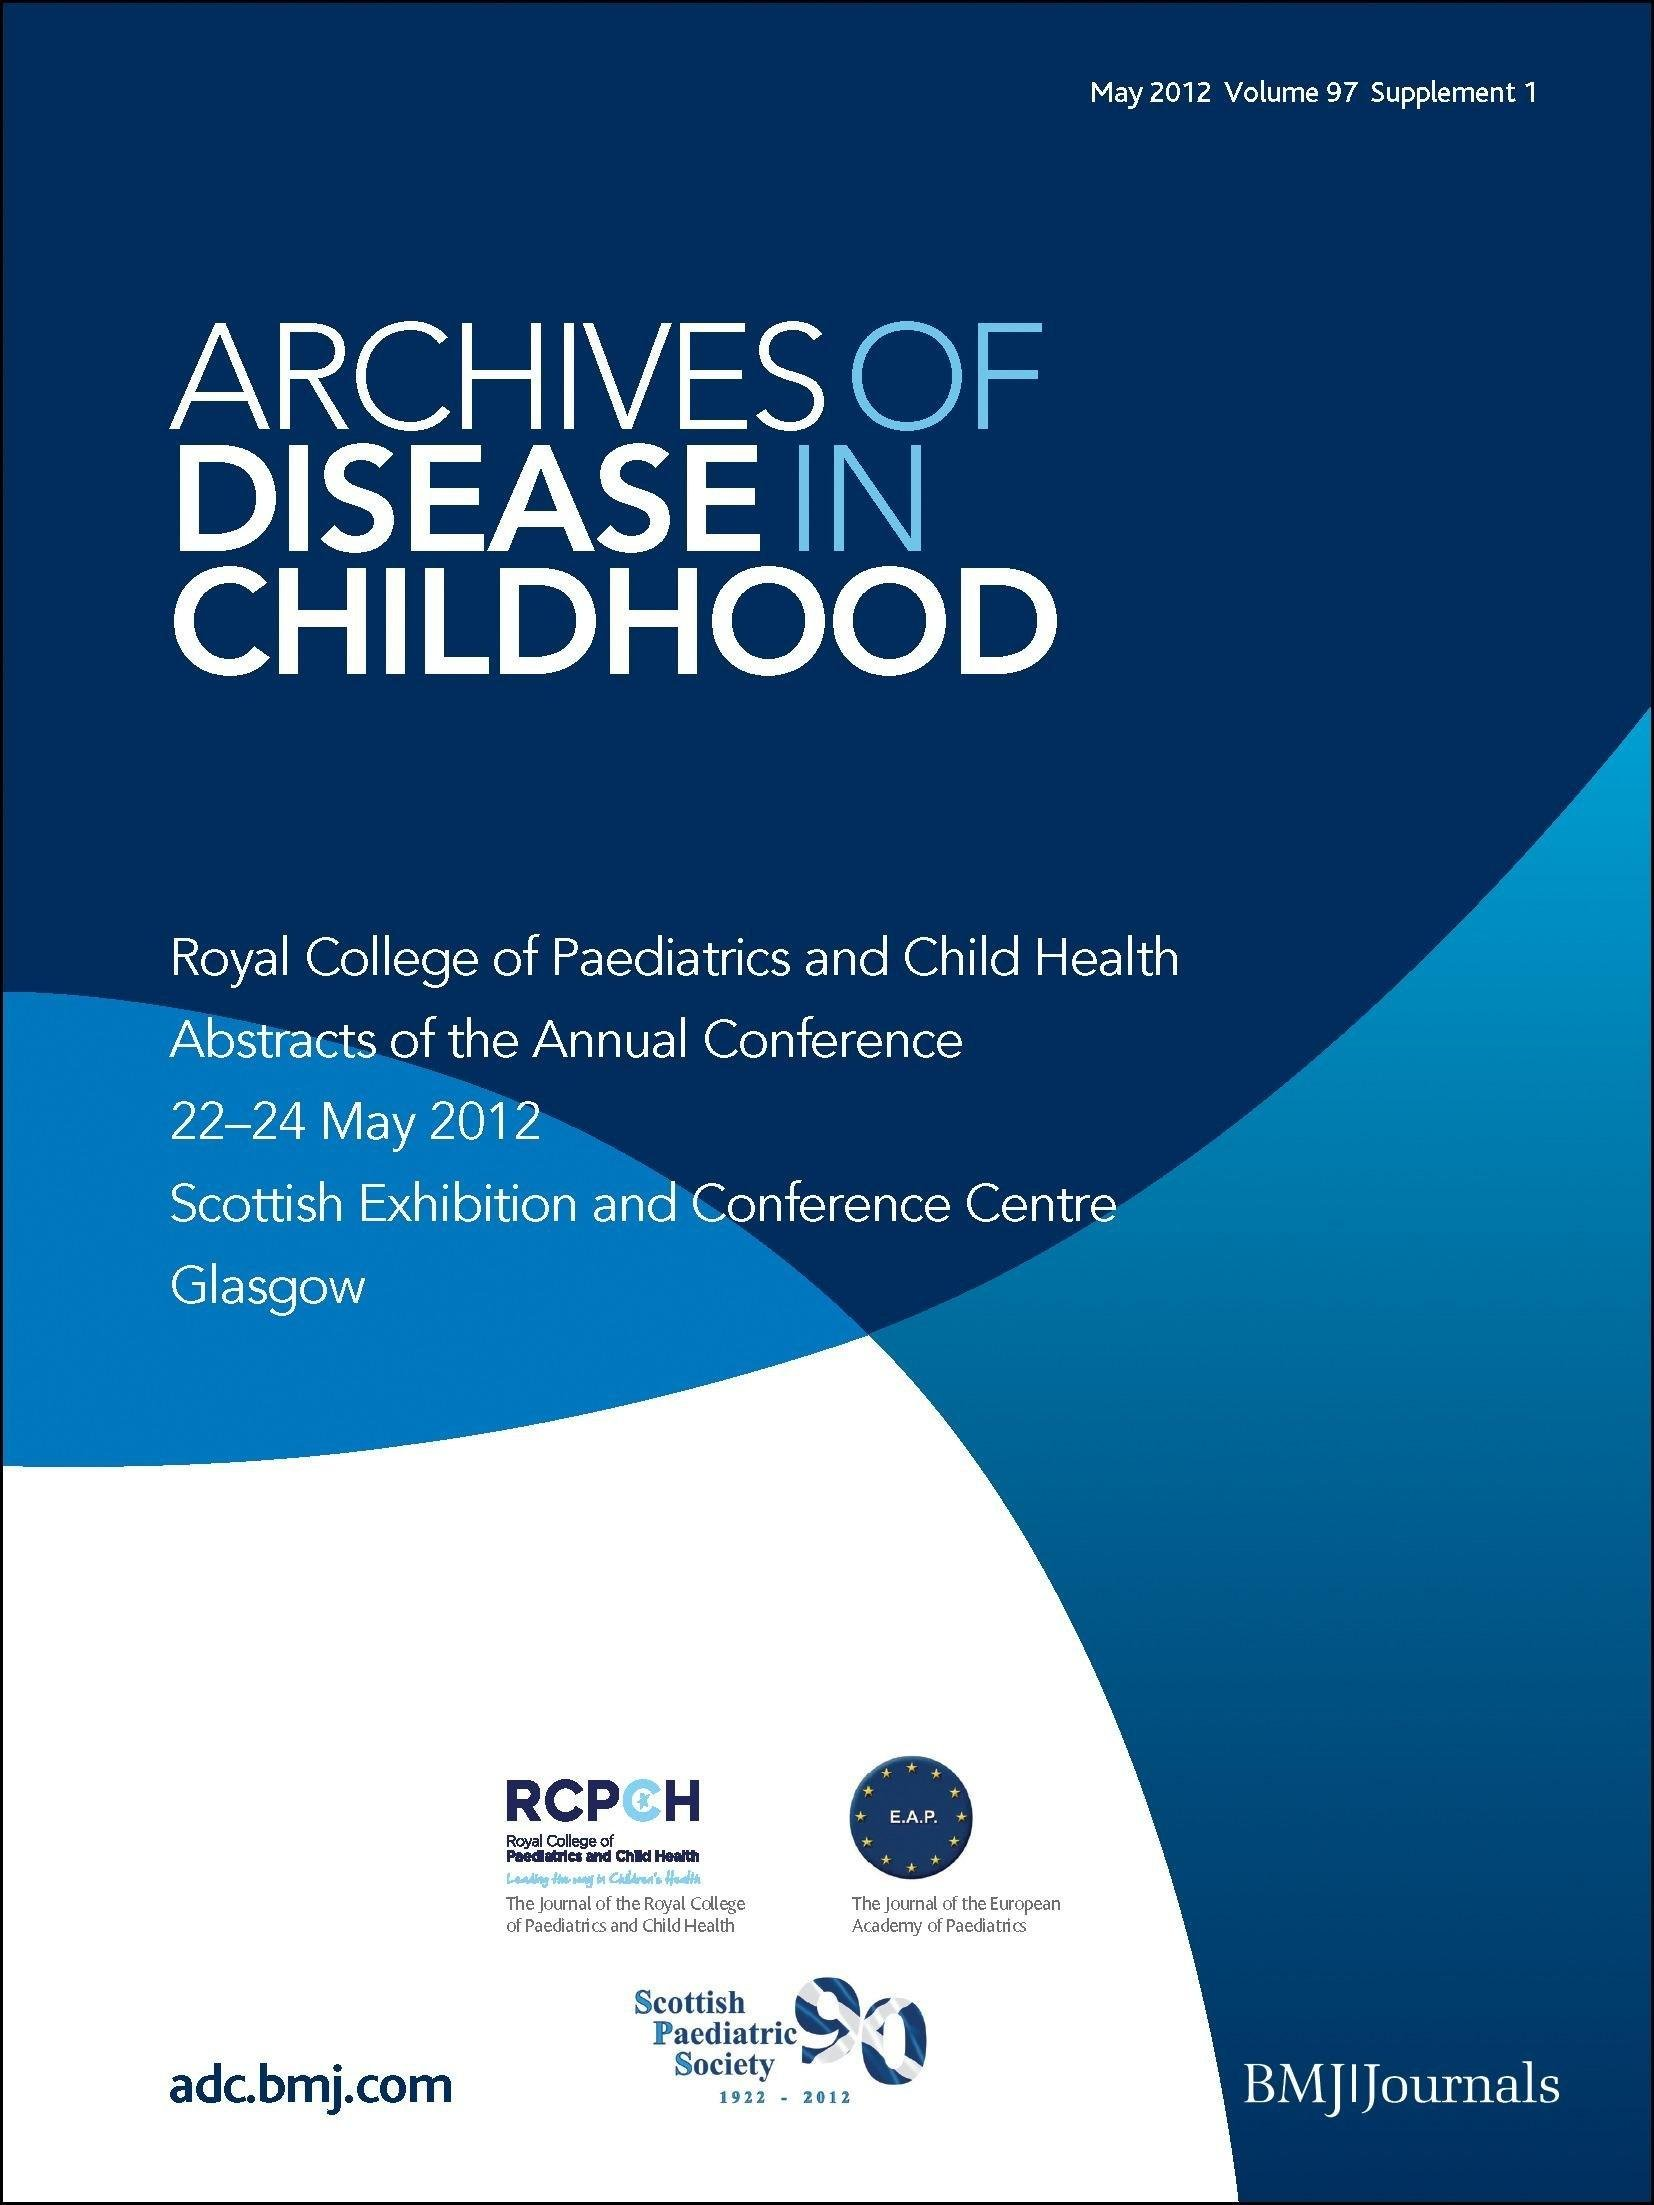 Survey Of Transitional Care Service For Patients With Type 1 Diabetes Mellitus | Archives Of Disease In Childhood